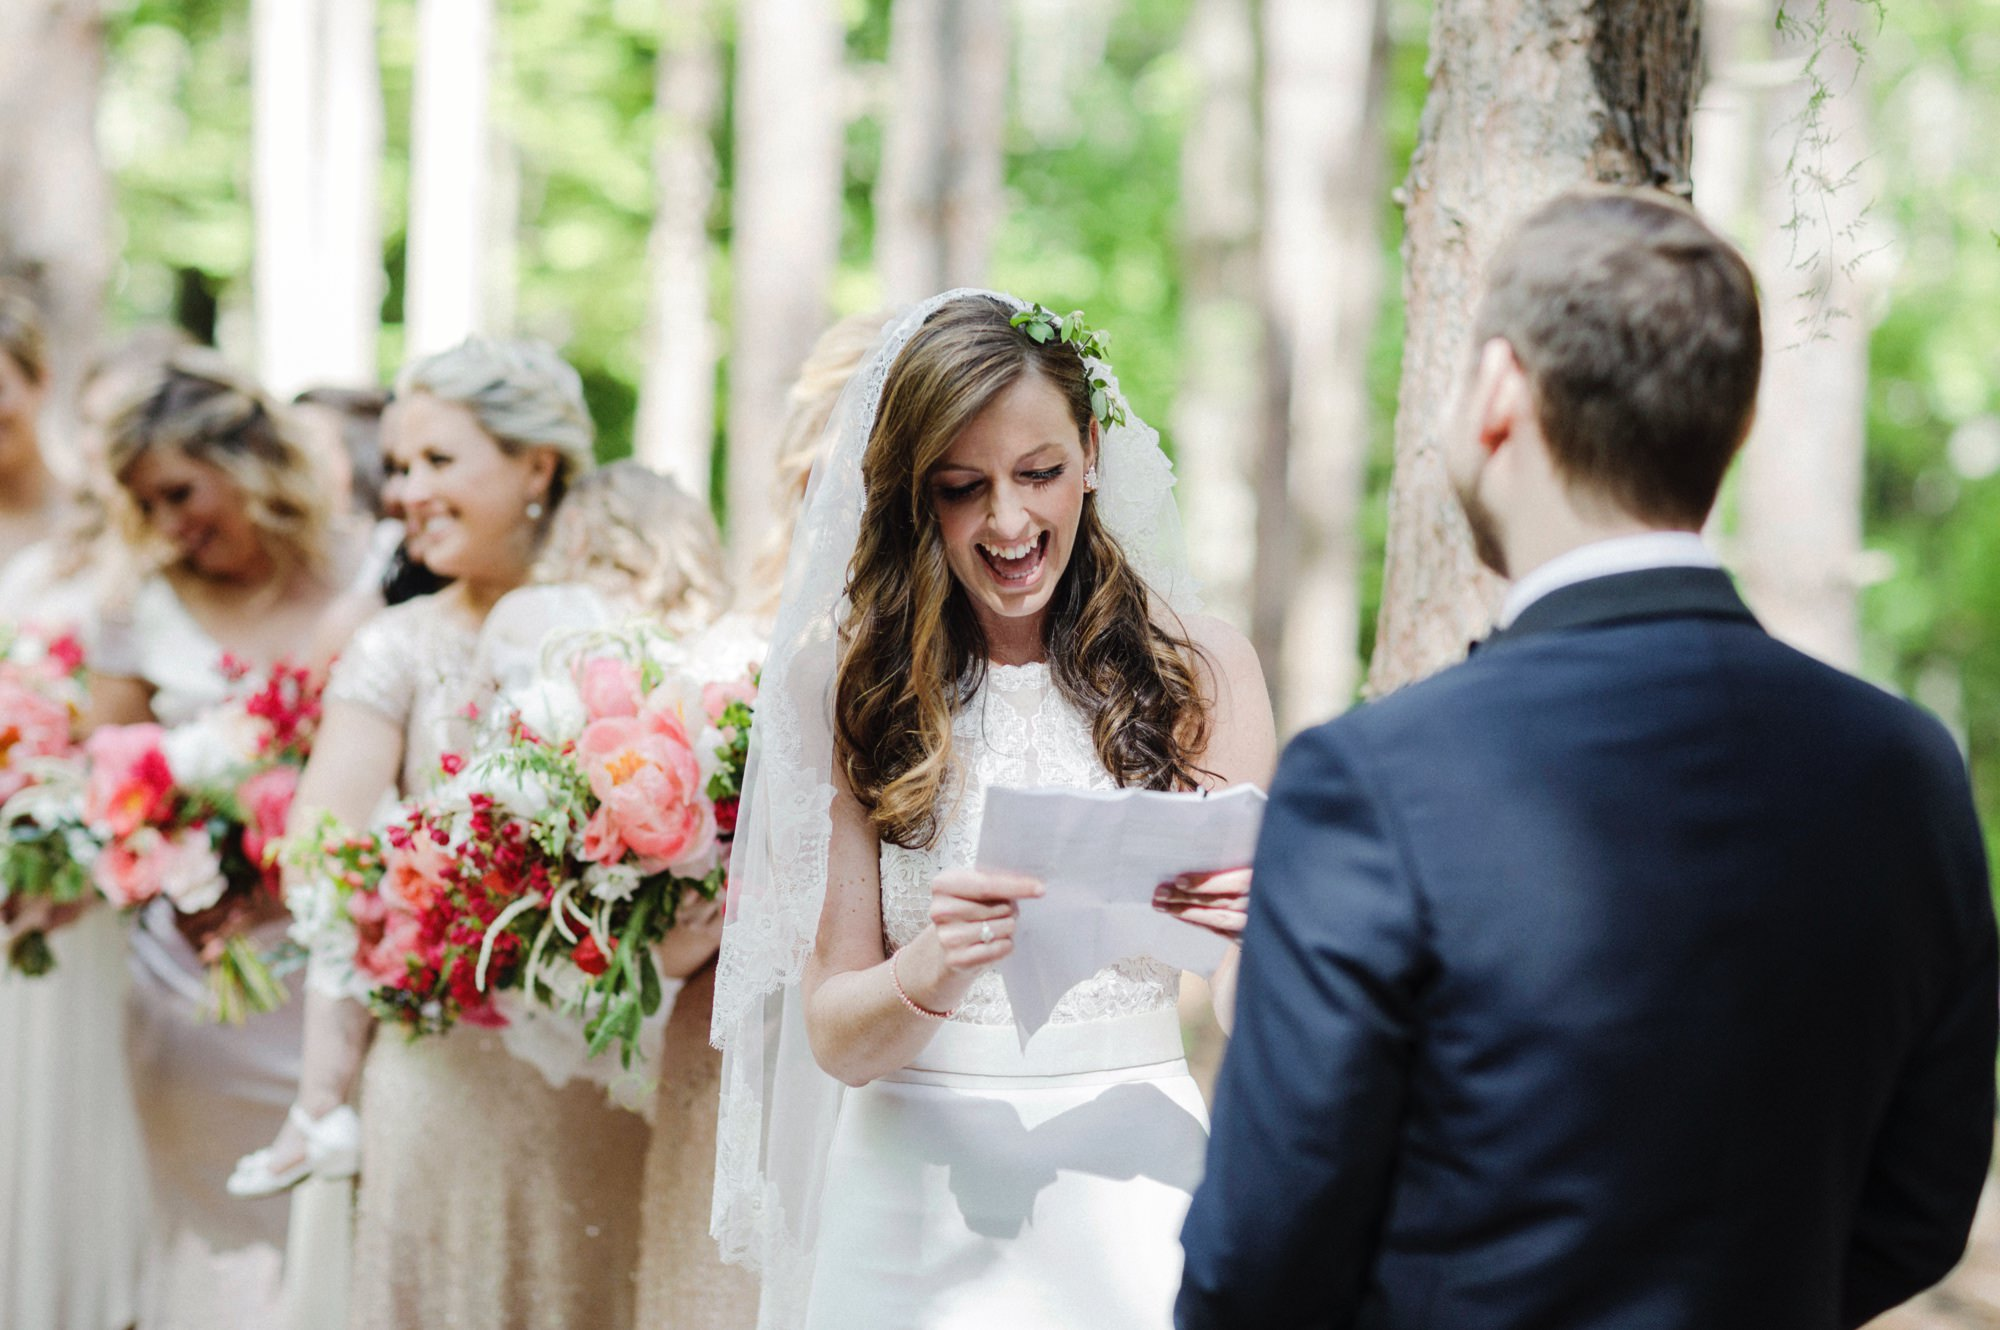 Bride reading vows at wedding ceremony at the Pine Grove location at Roxbury Barn Estate in the Catskills New York